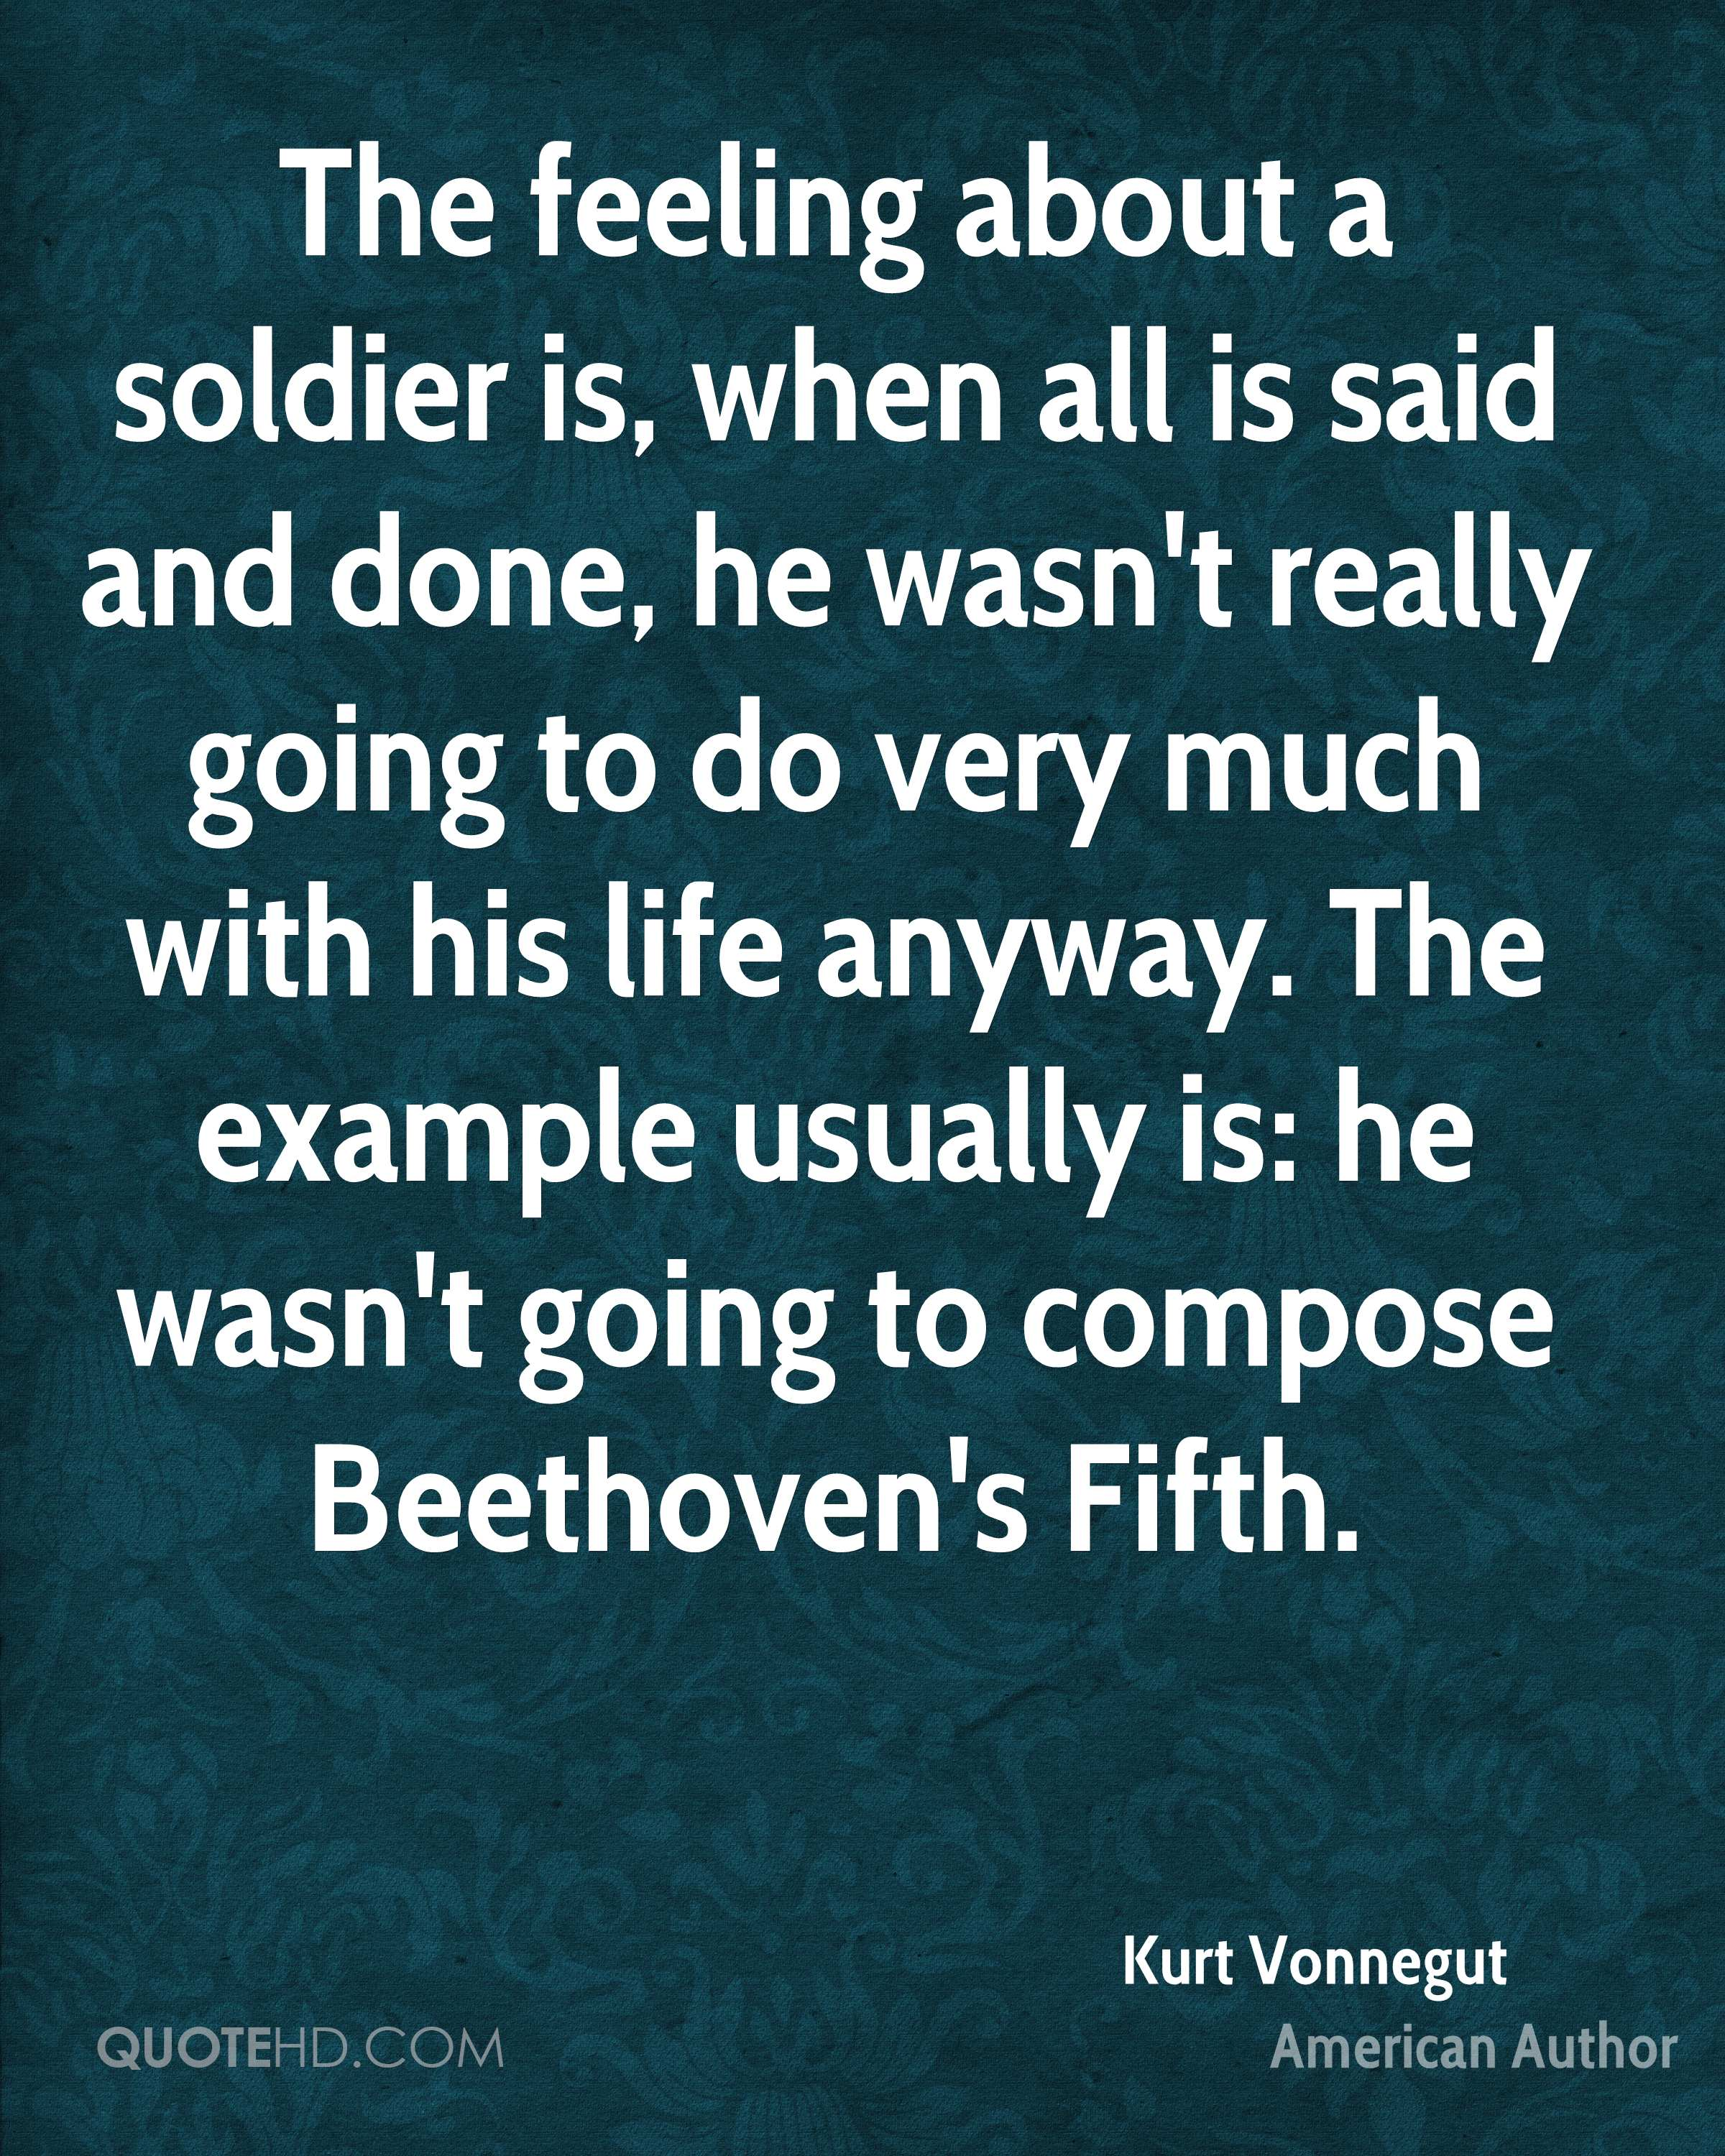 The feeling about a soldier is, when all is said and done, he wasn't really going to do very much with his life anyway. The example usually is: he wasn't going to compose Beethoven's Fifth.